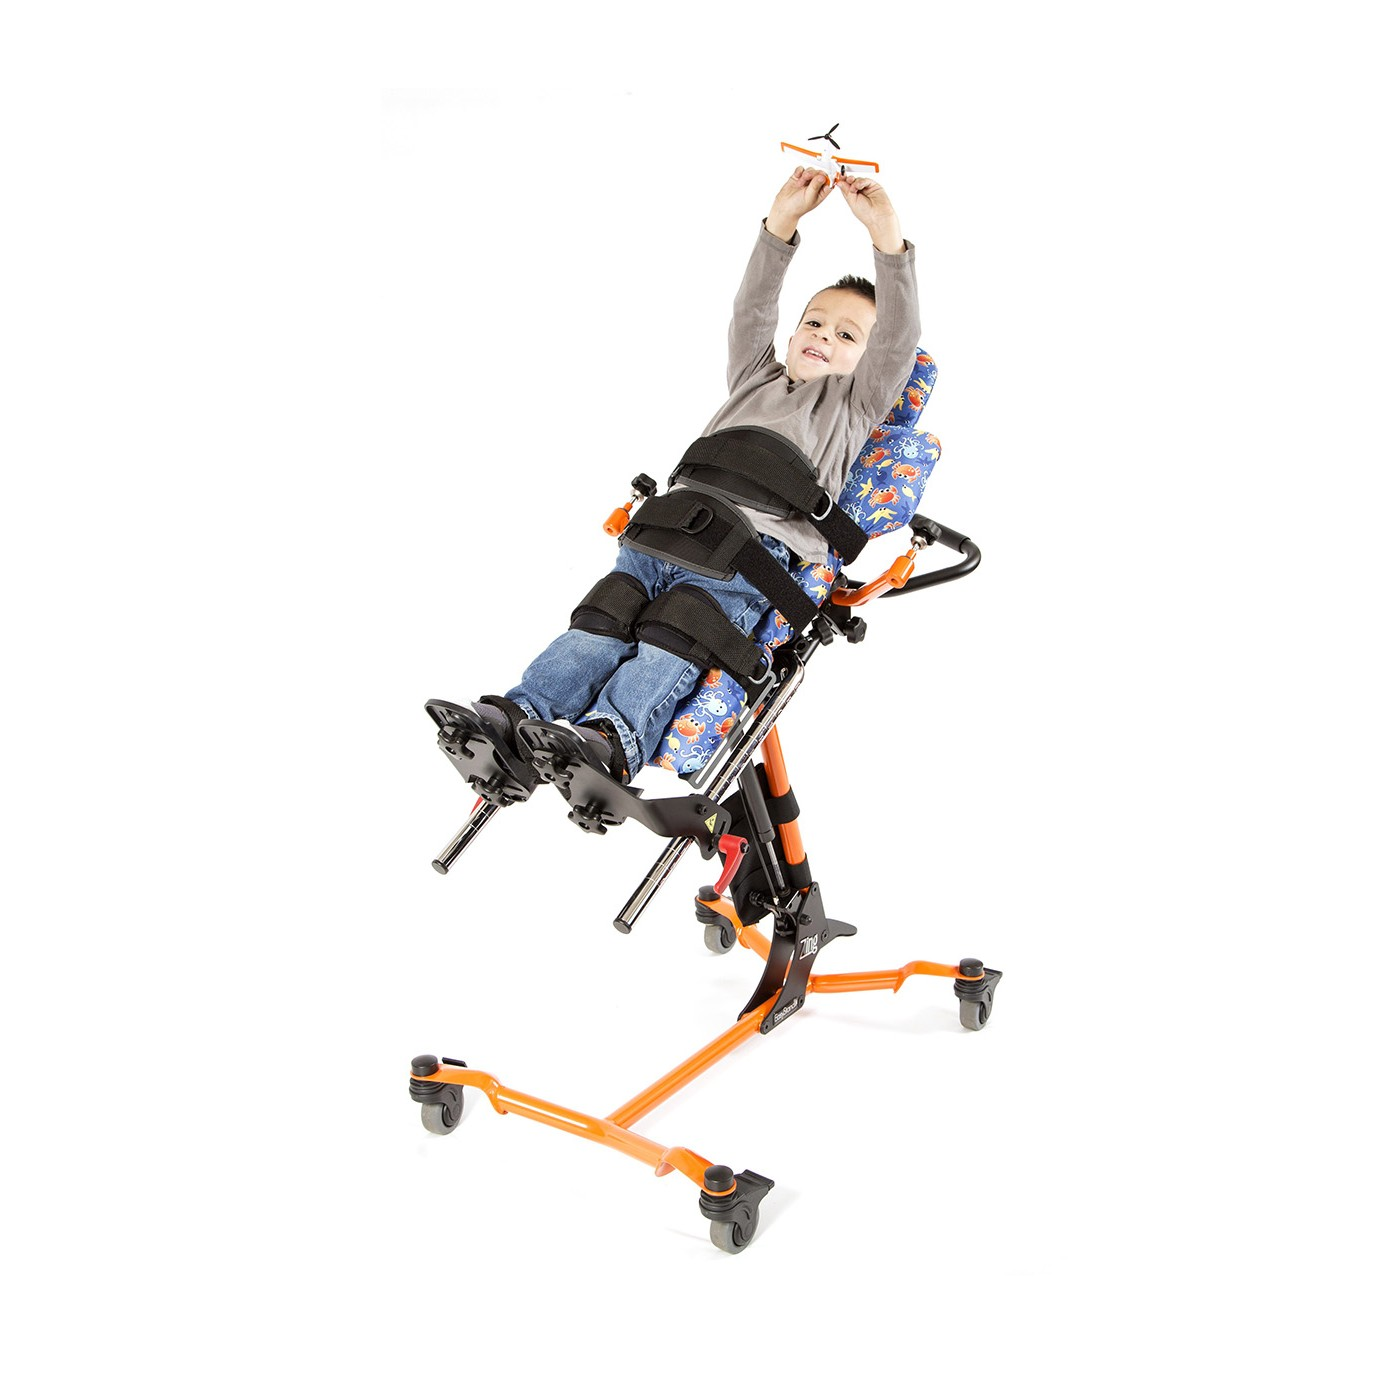 Child laying in Orange EasyStand Zing Supine TT Size 1